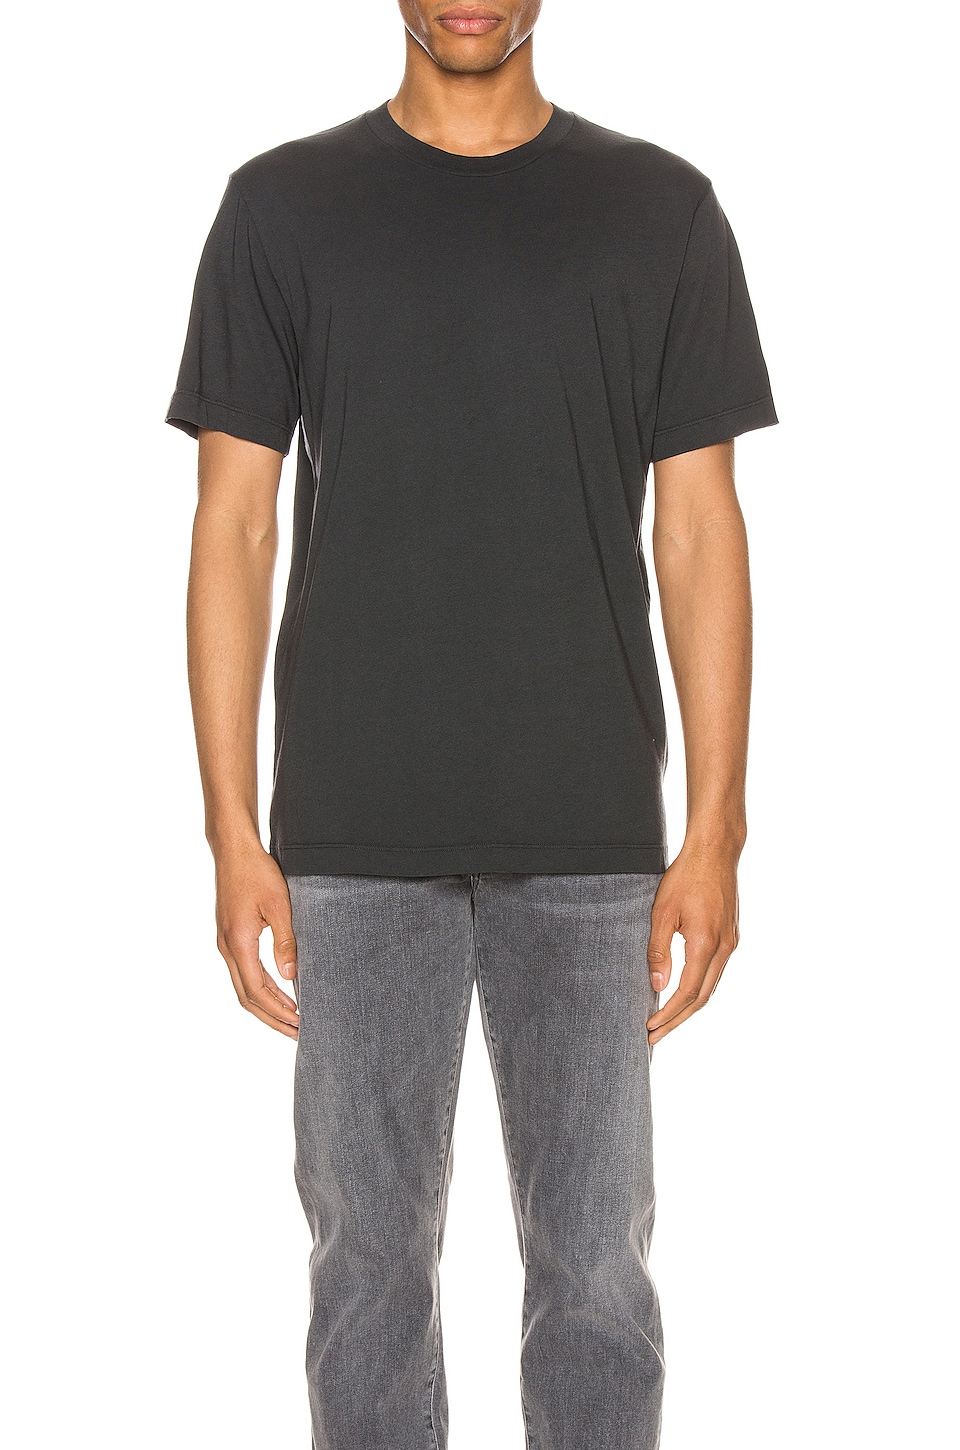 Citizens of Humanity Everyday Classic Short Sleeve Tee in Charcoal